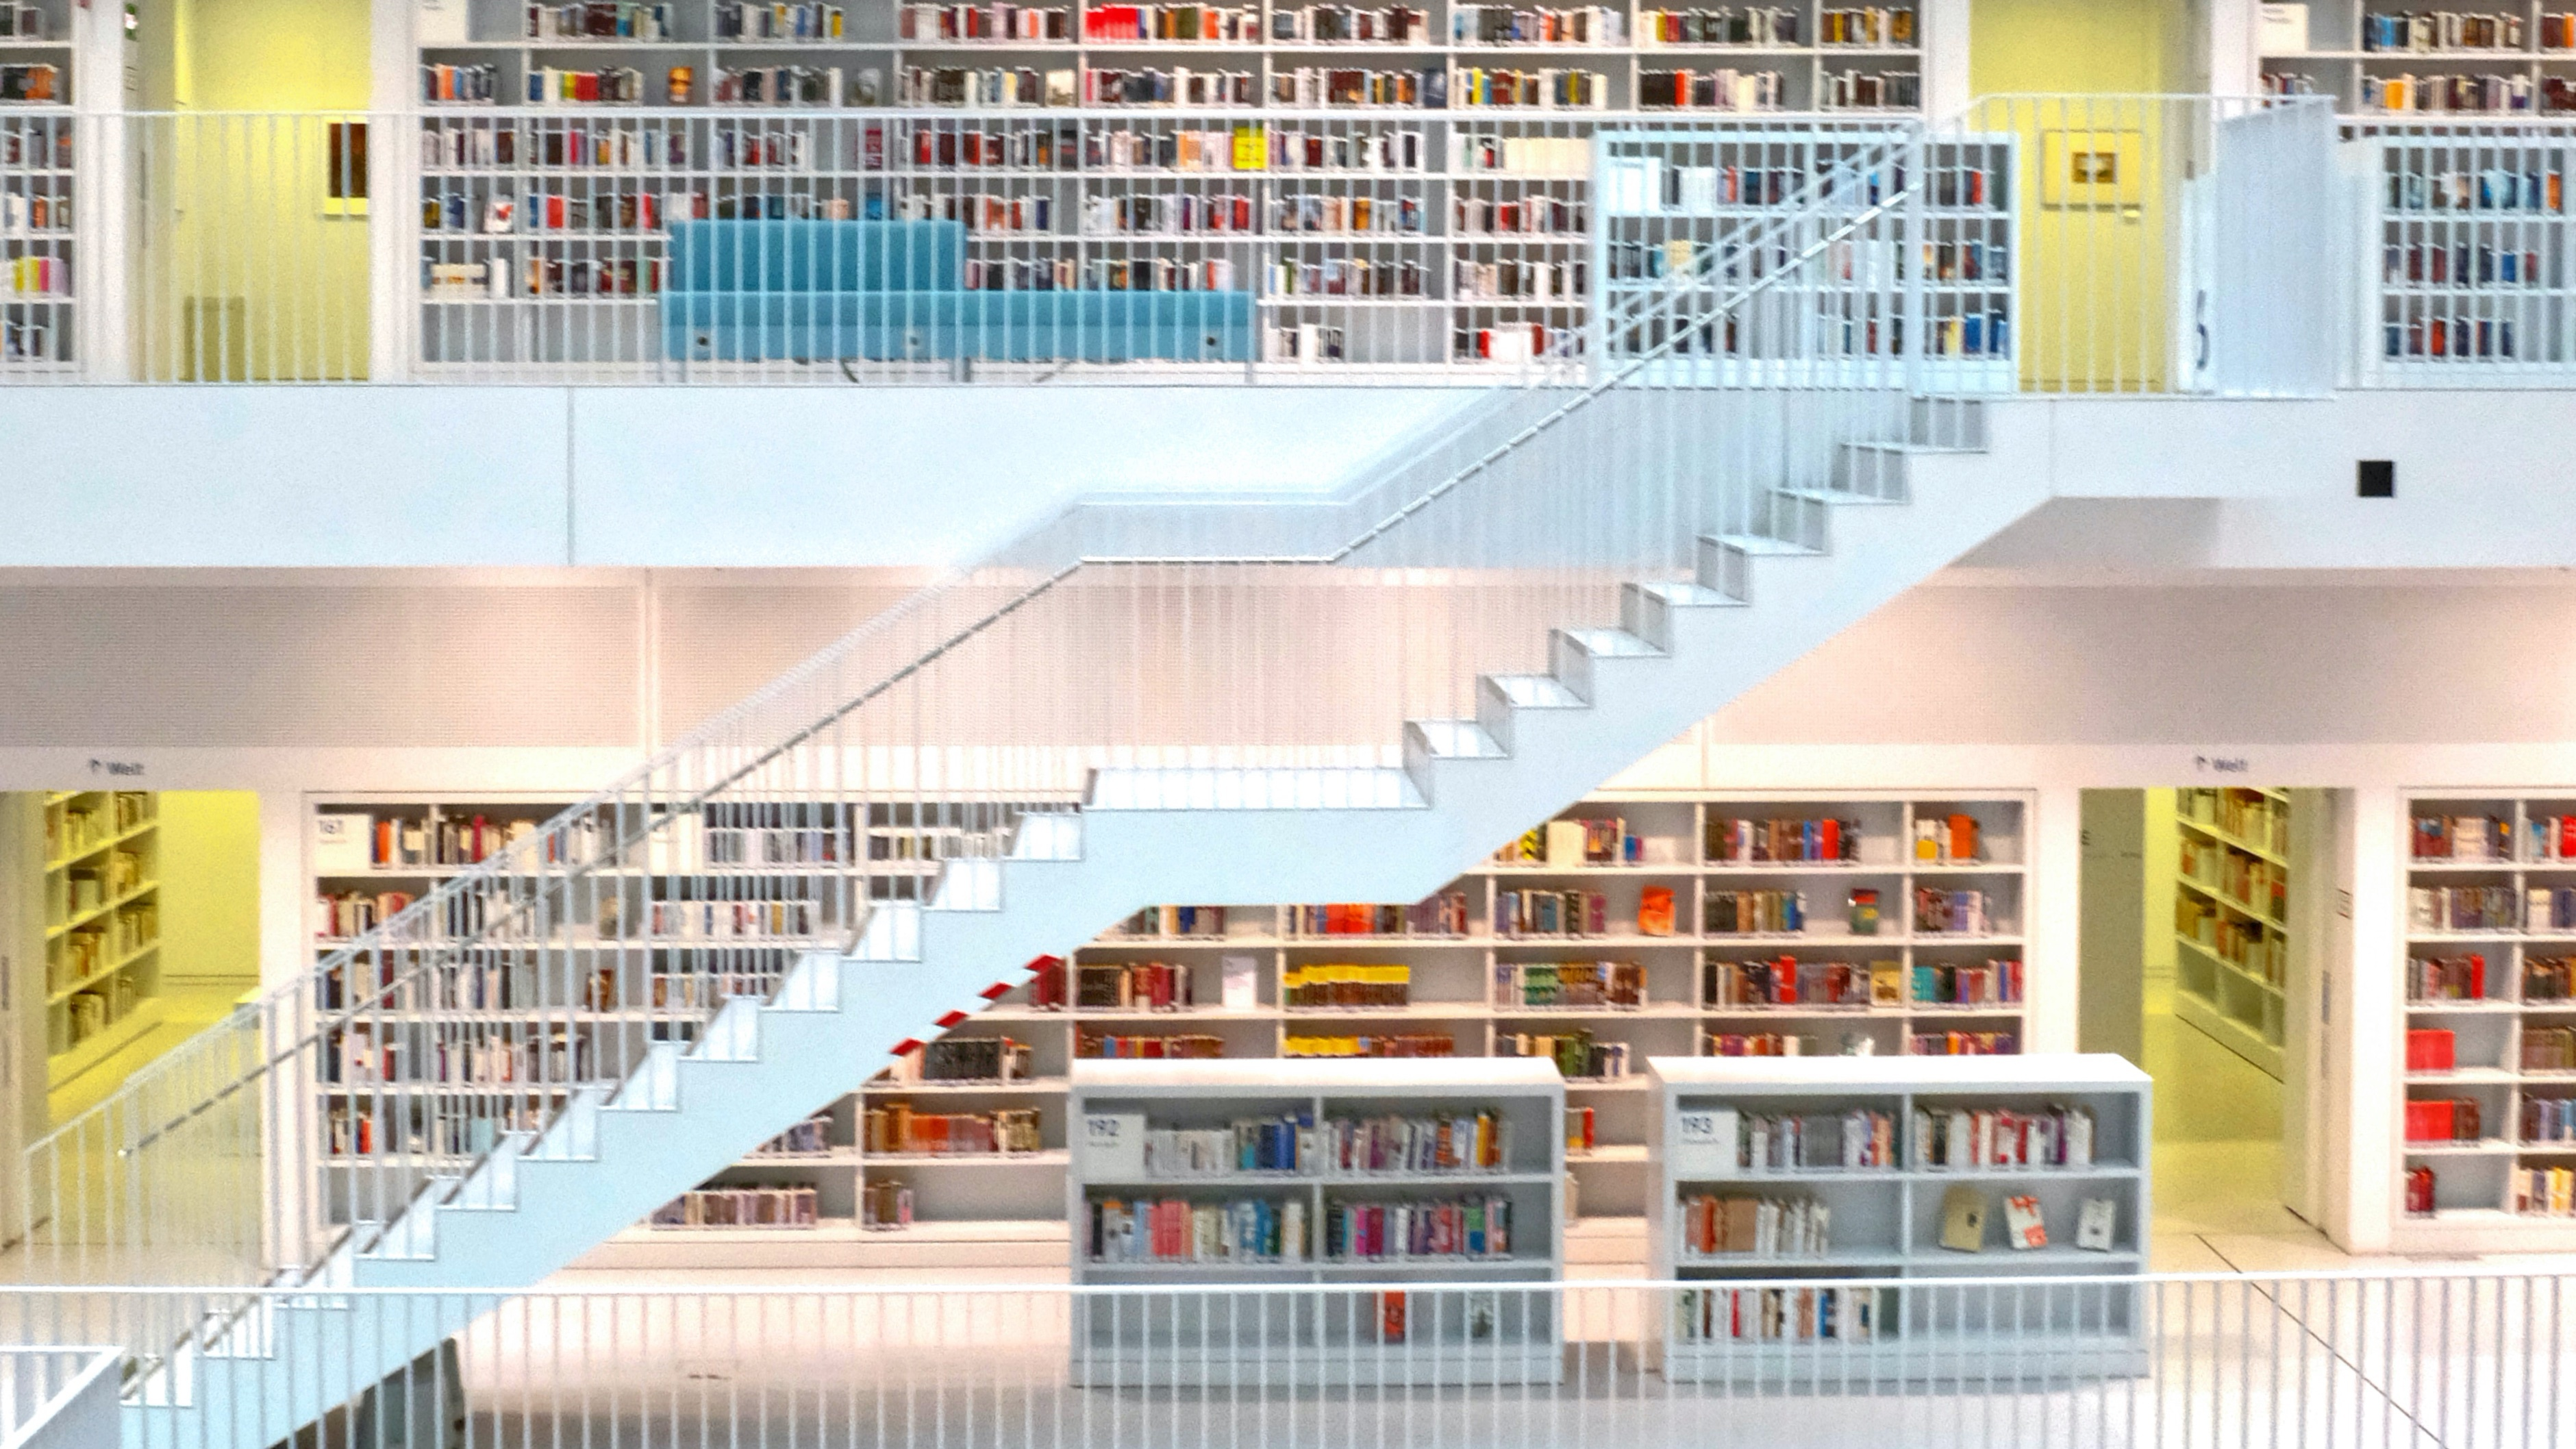 Guess what? We go to libraries more often than movies.